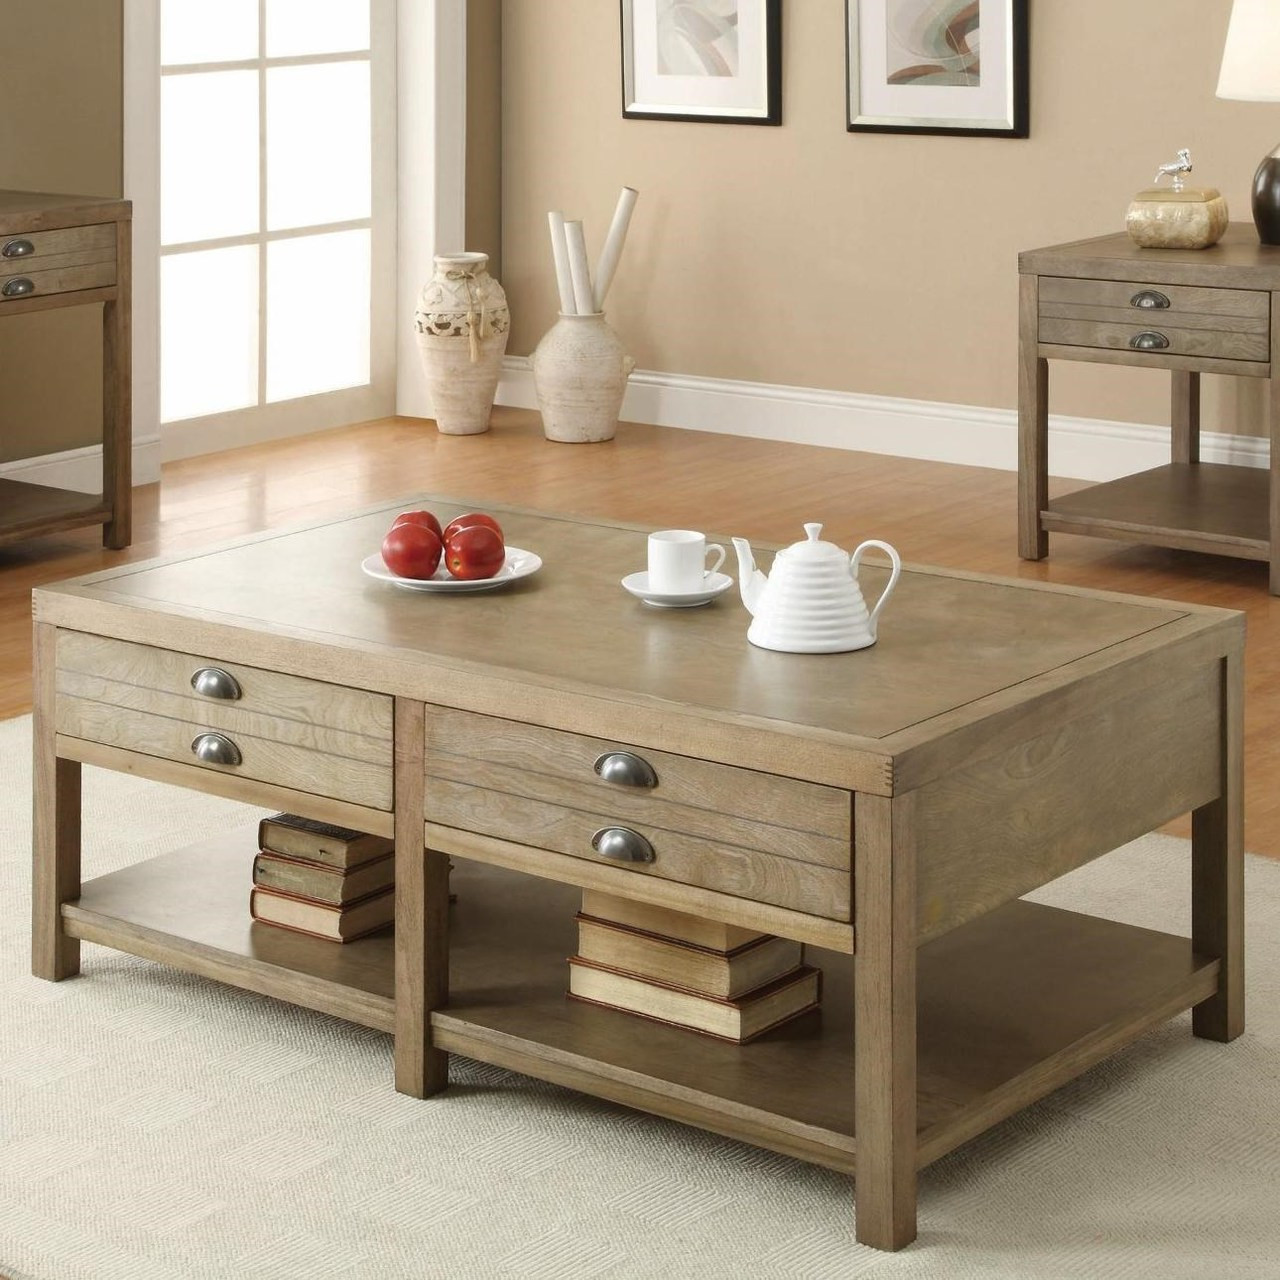 Gentil Driftwood Finish Coffee Table With Drawers | Elegant Coffee Table With  Drawers